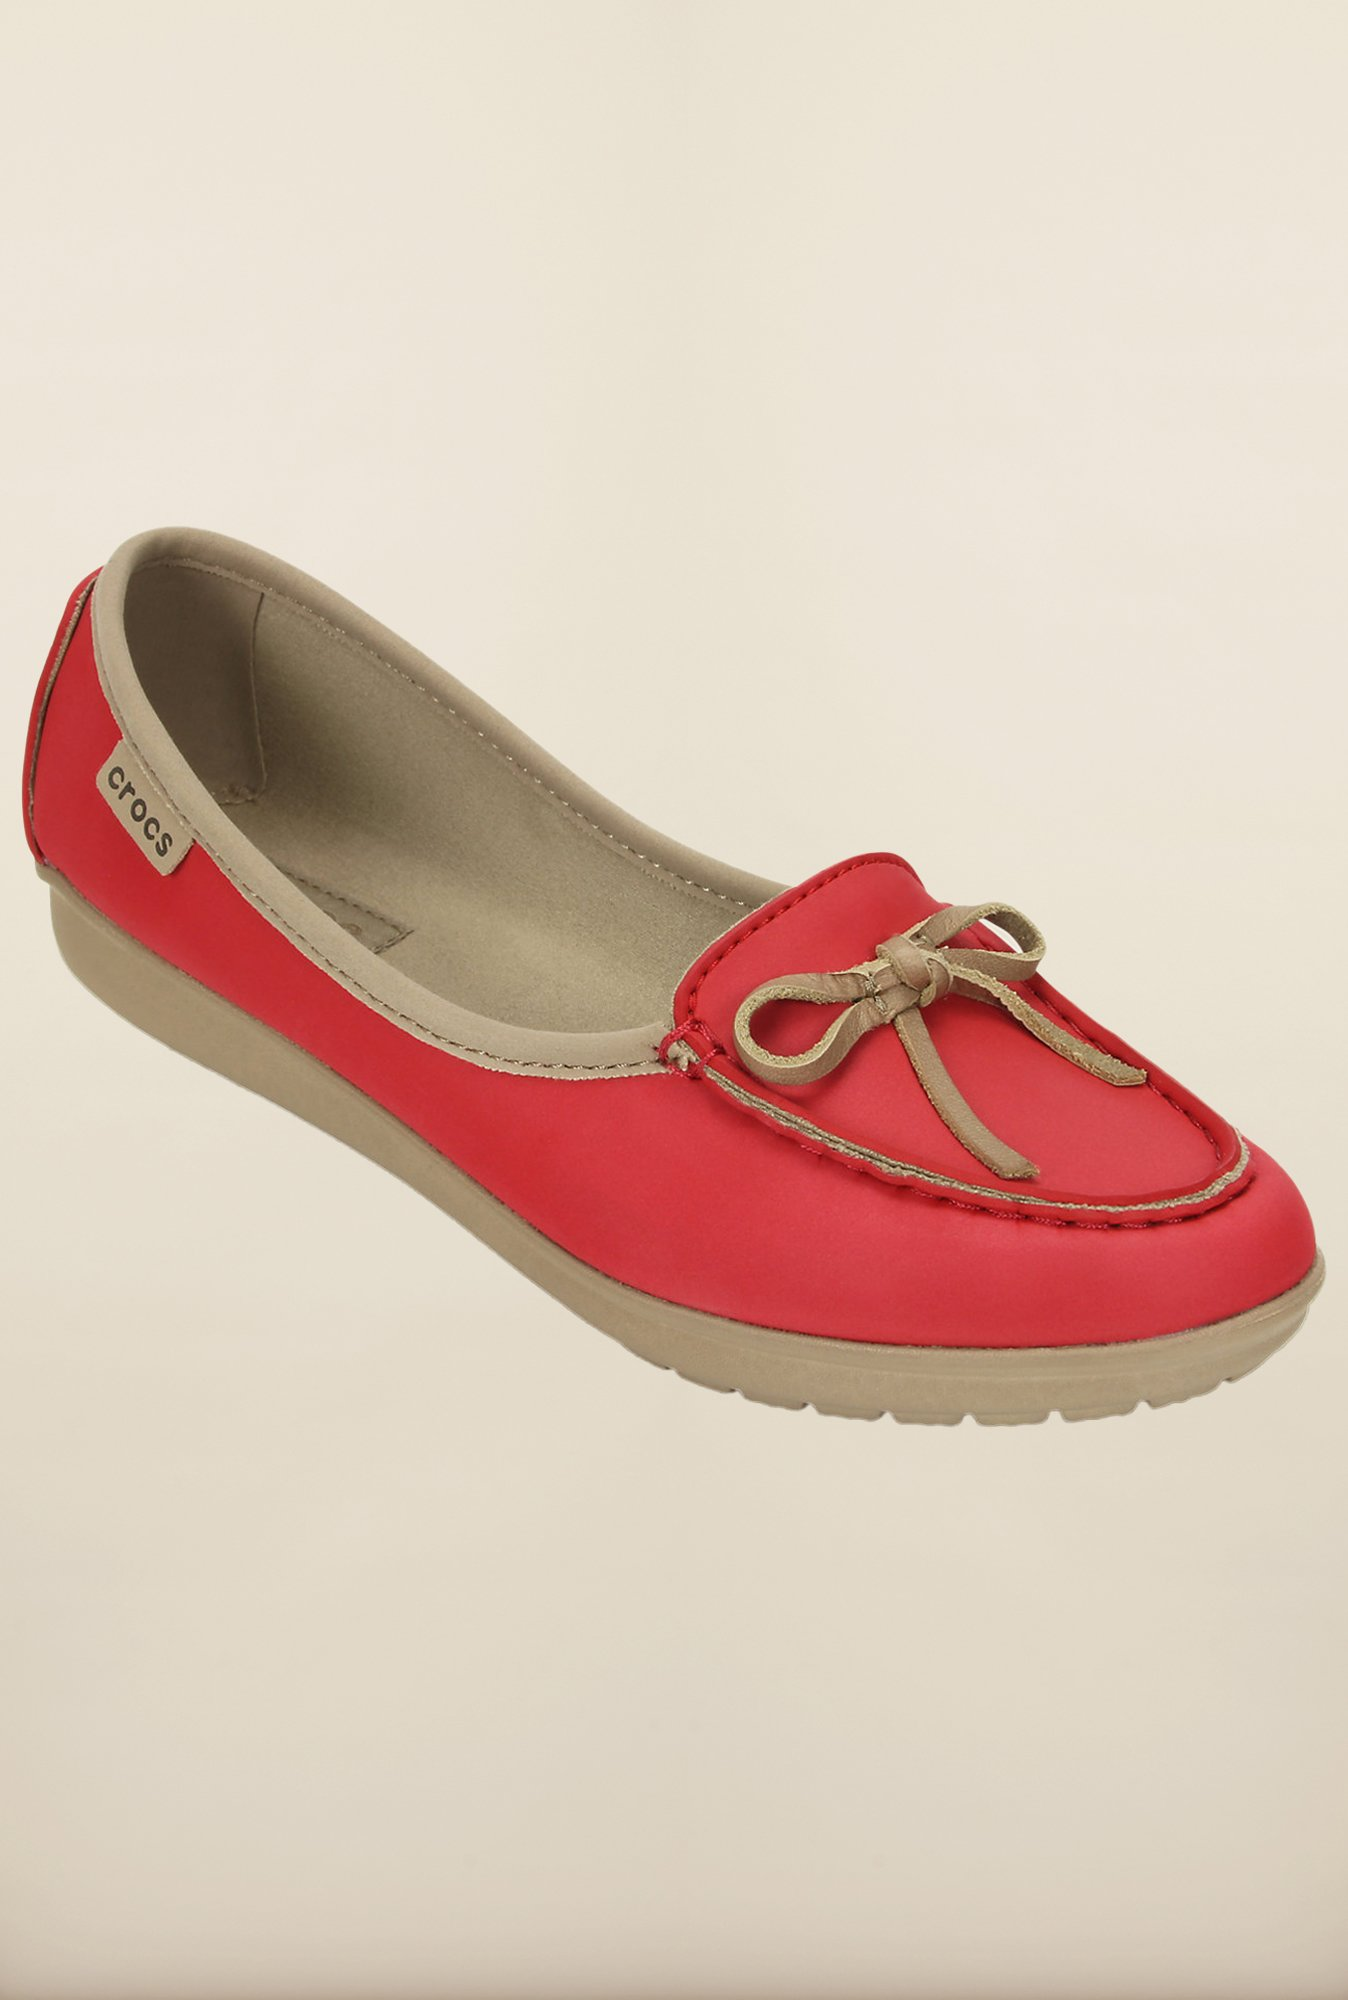 Crocs Wrap Color Lite Ballet Coral and Tumbleweed Loafer